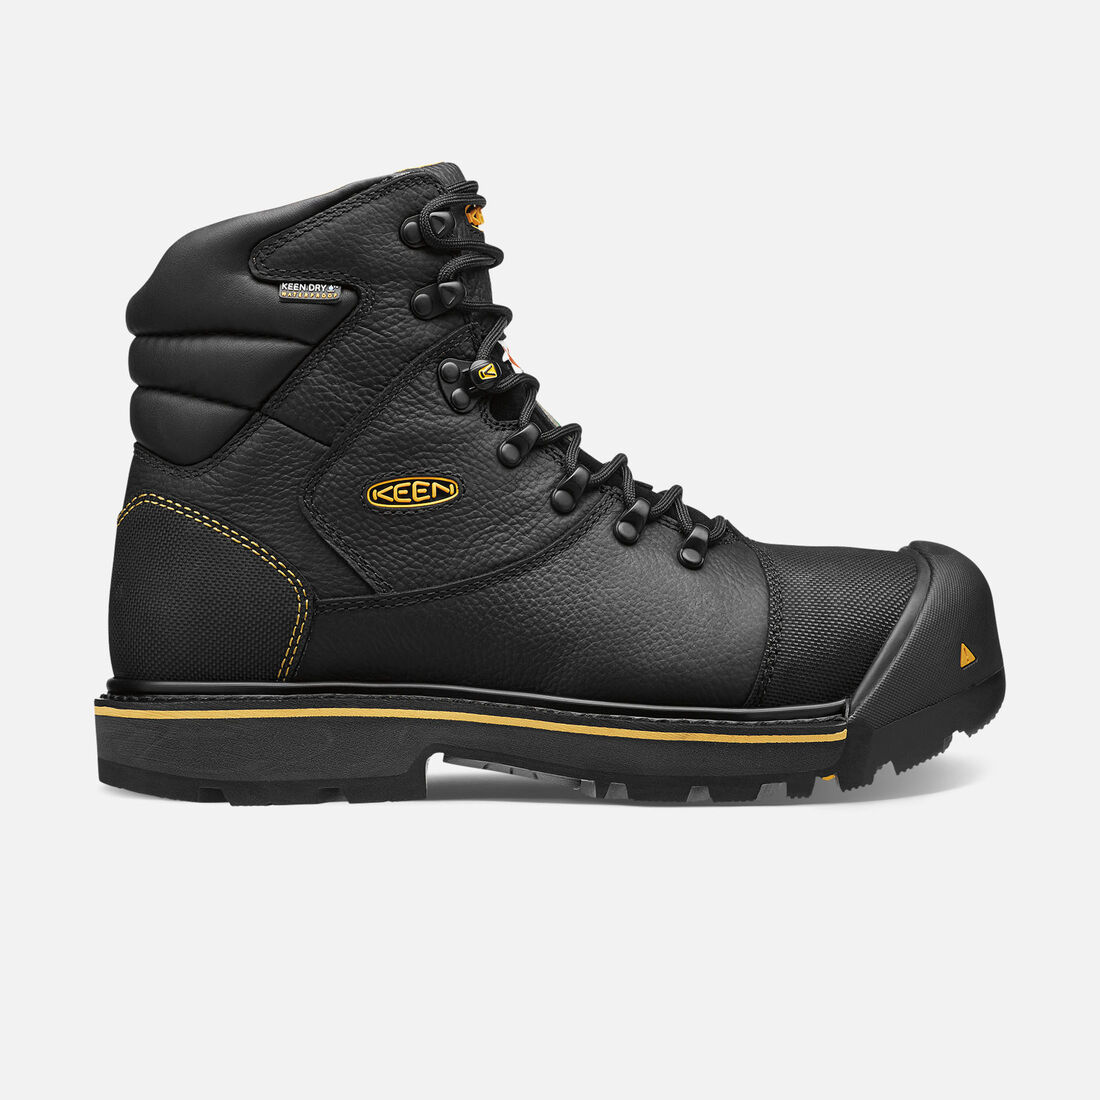 d6a308eb6dd Men's CSA Fort Mac Waterproof Boot (Steel Toe) - For long days ...